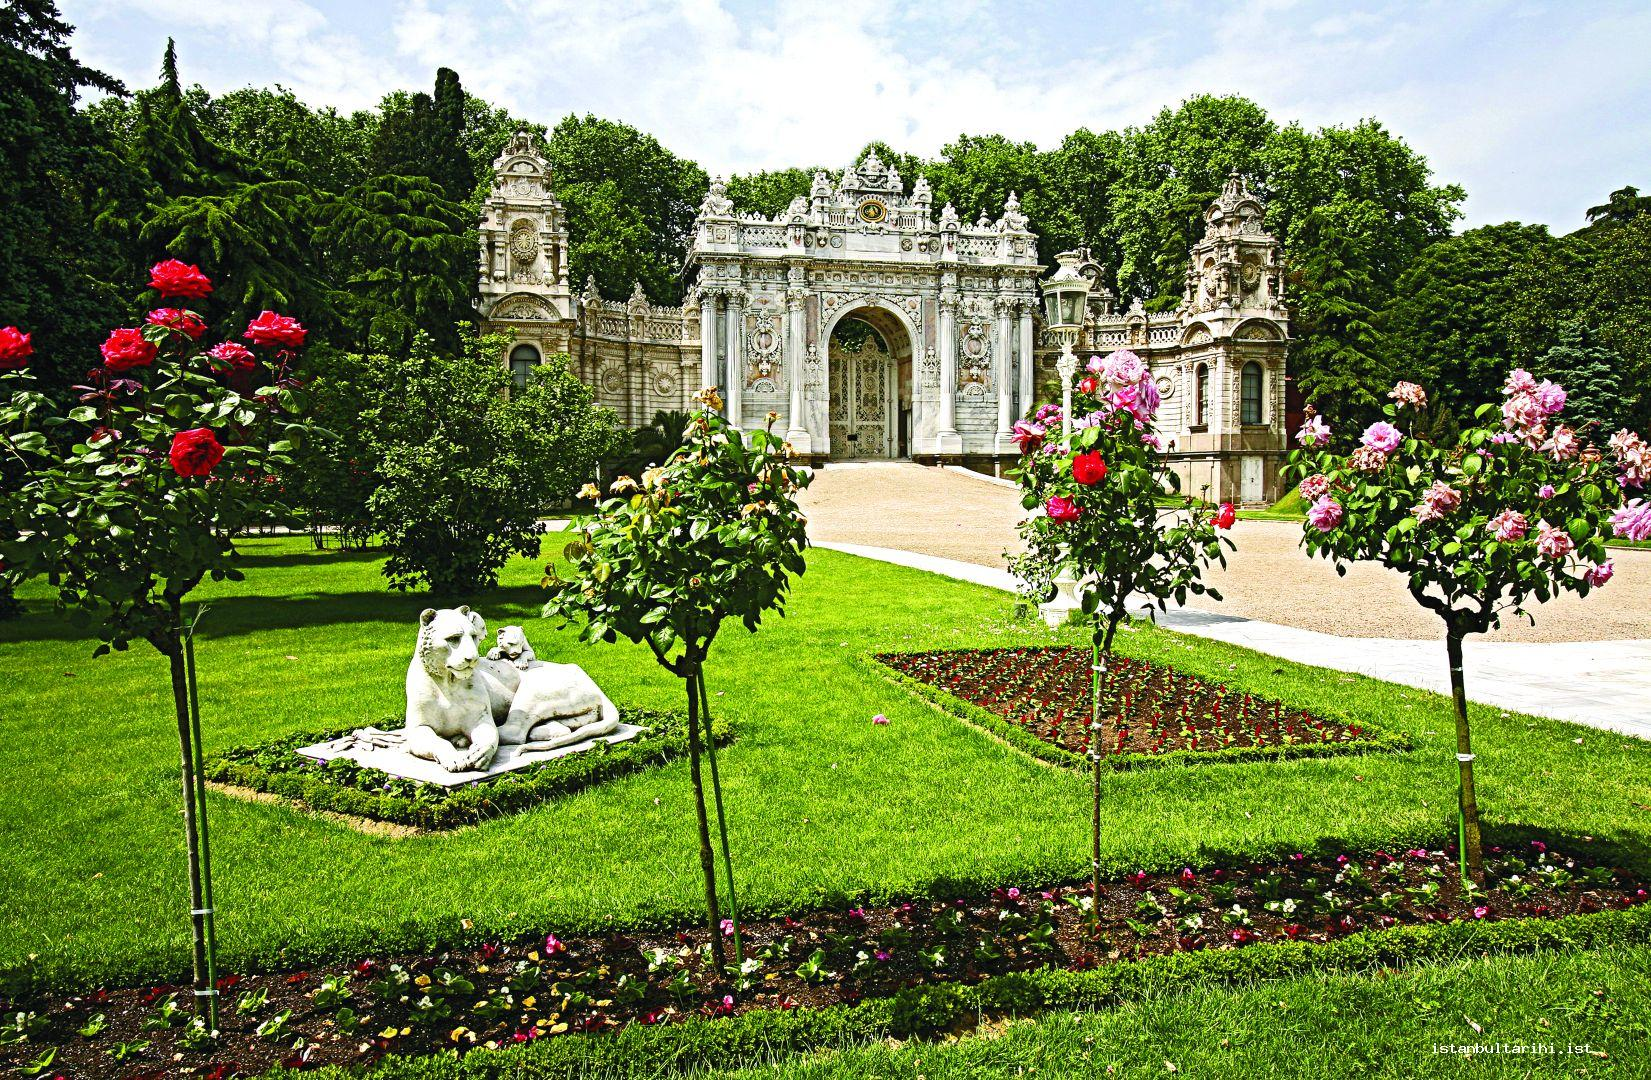 3- Sultanate gate of Dolmabahçe Palace (from the land side)